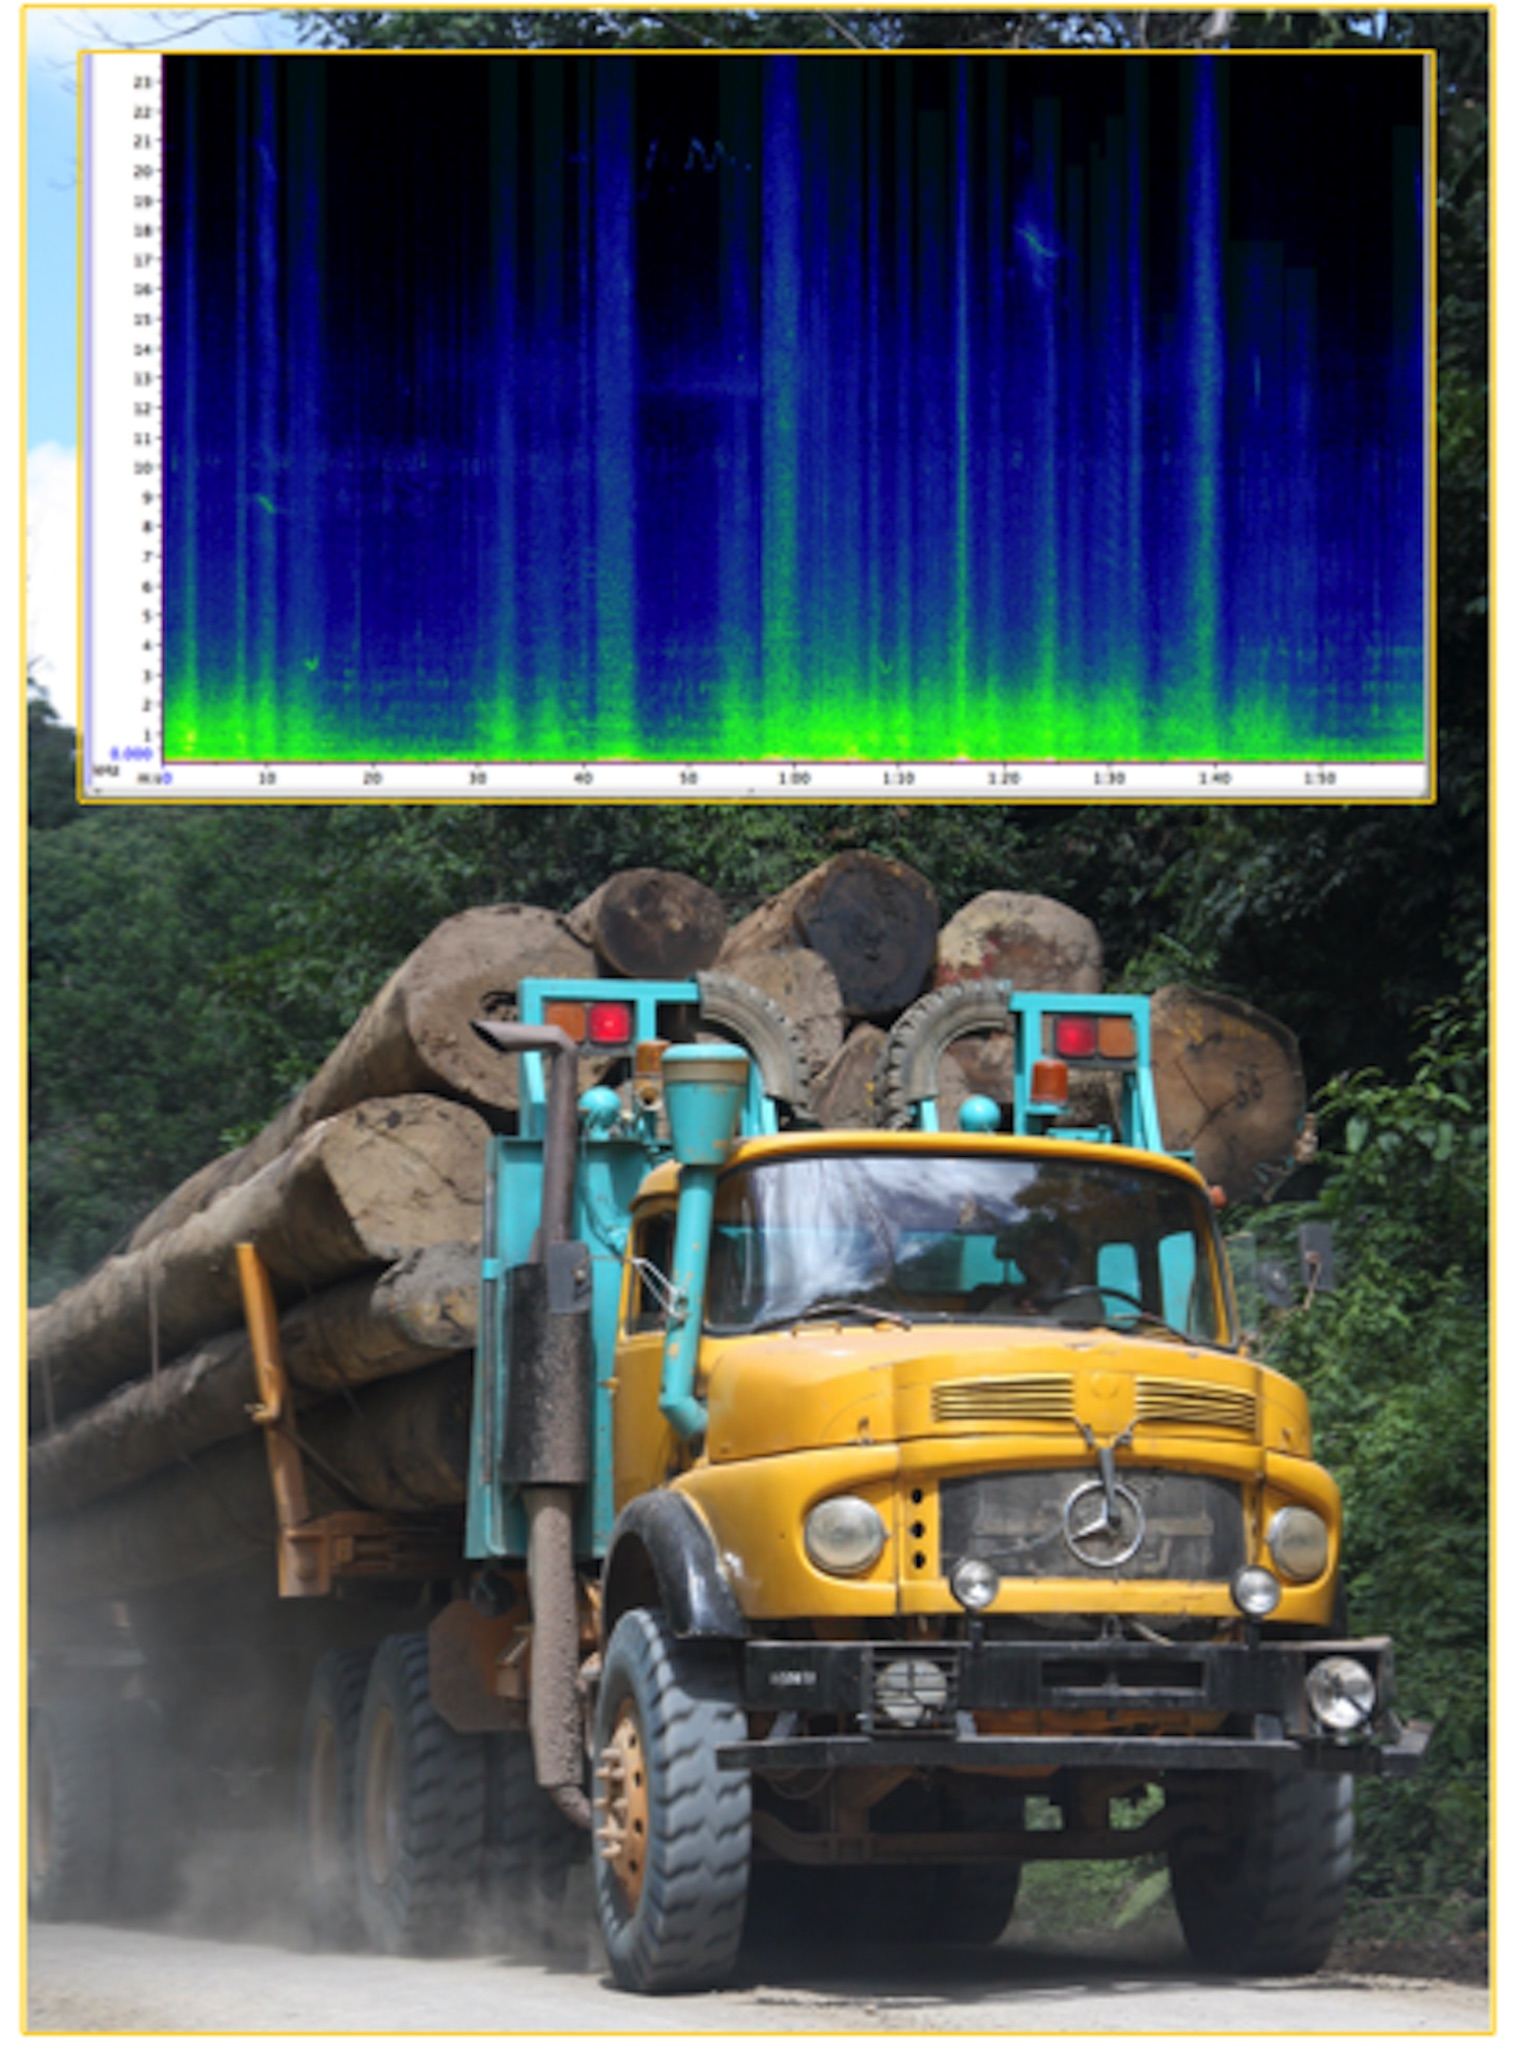 A graph (sonogram) of road noises, above a logging truck.